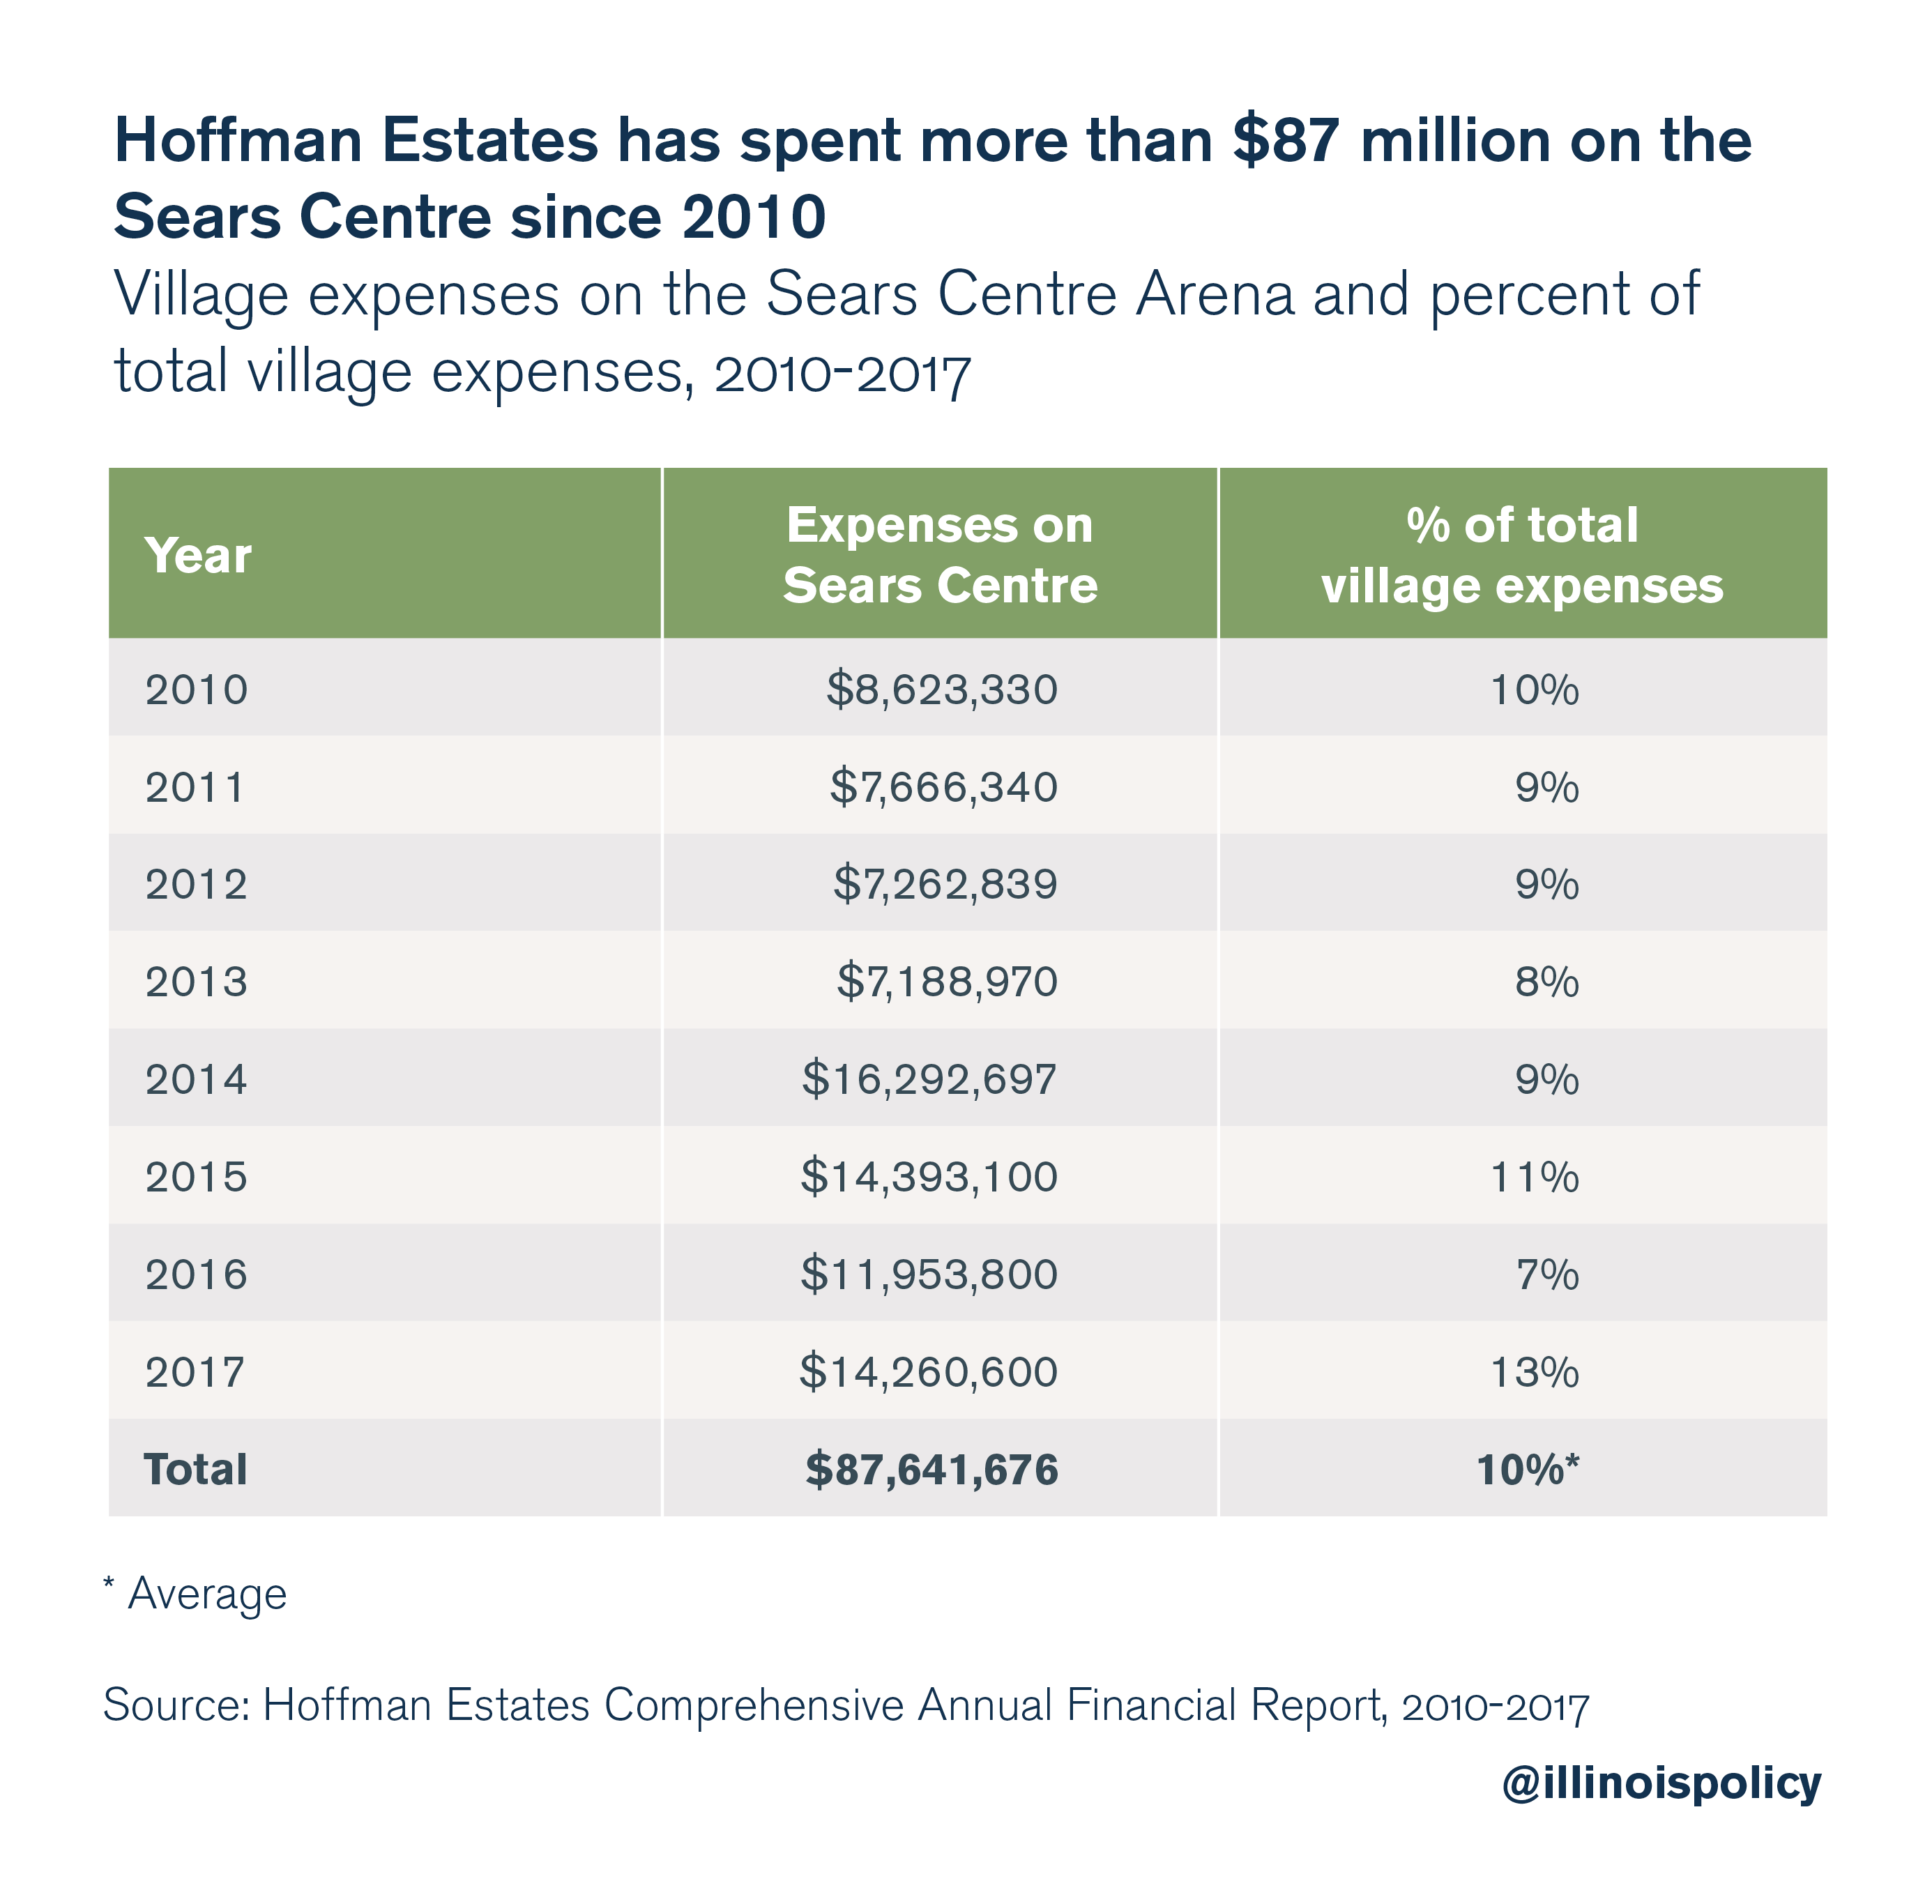 Hoffman Estates has spent more than $87 million on the Sears Centre since 2010